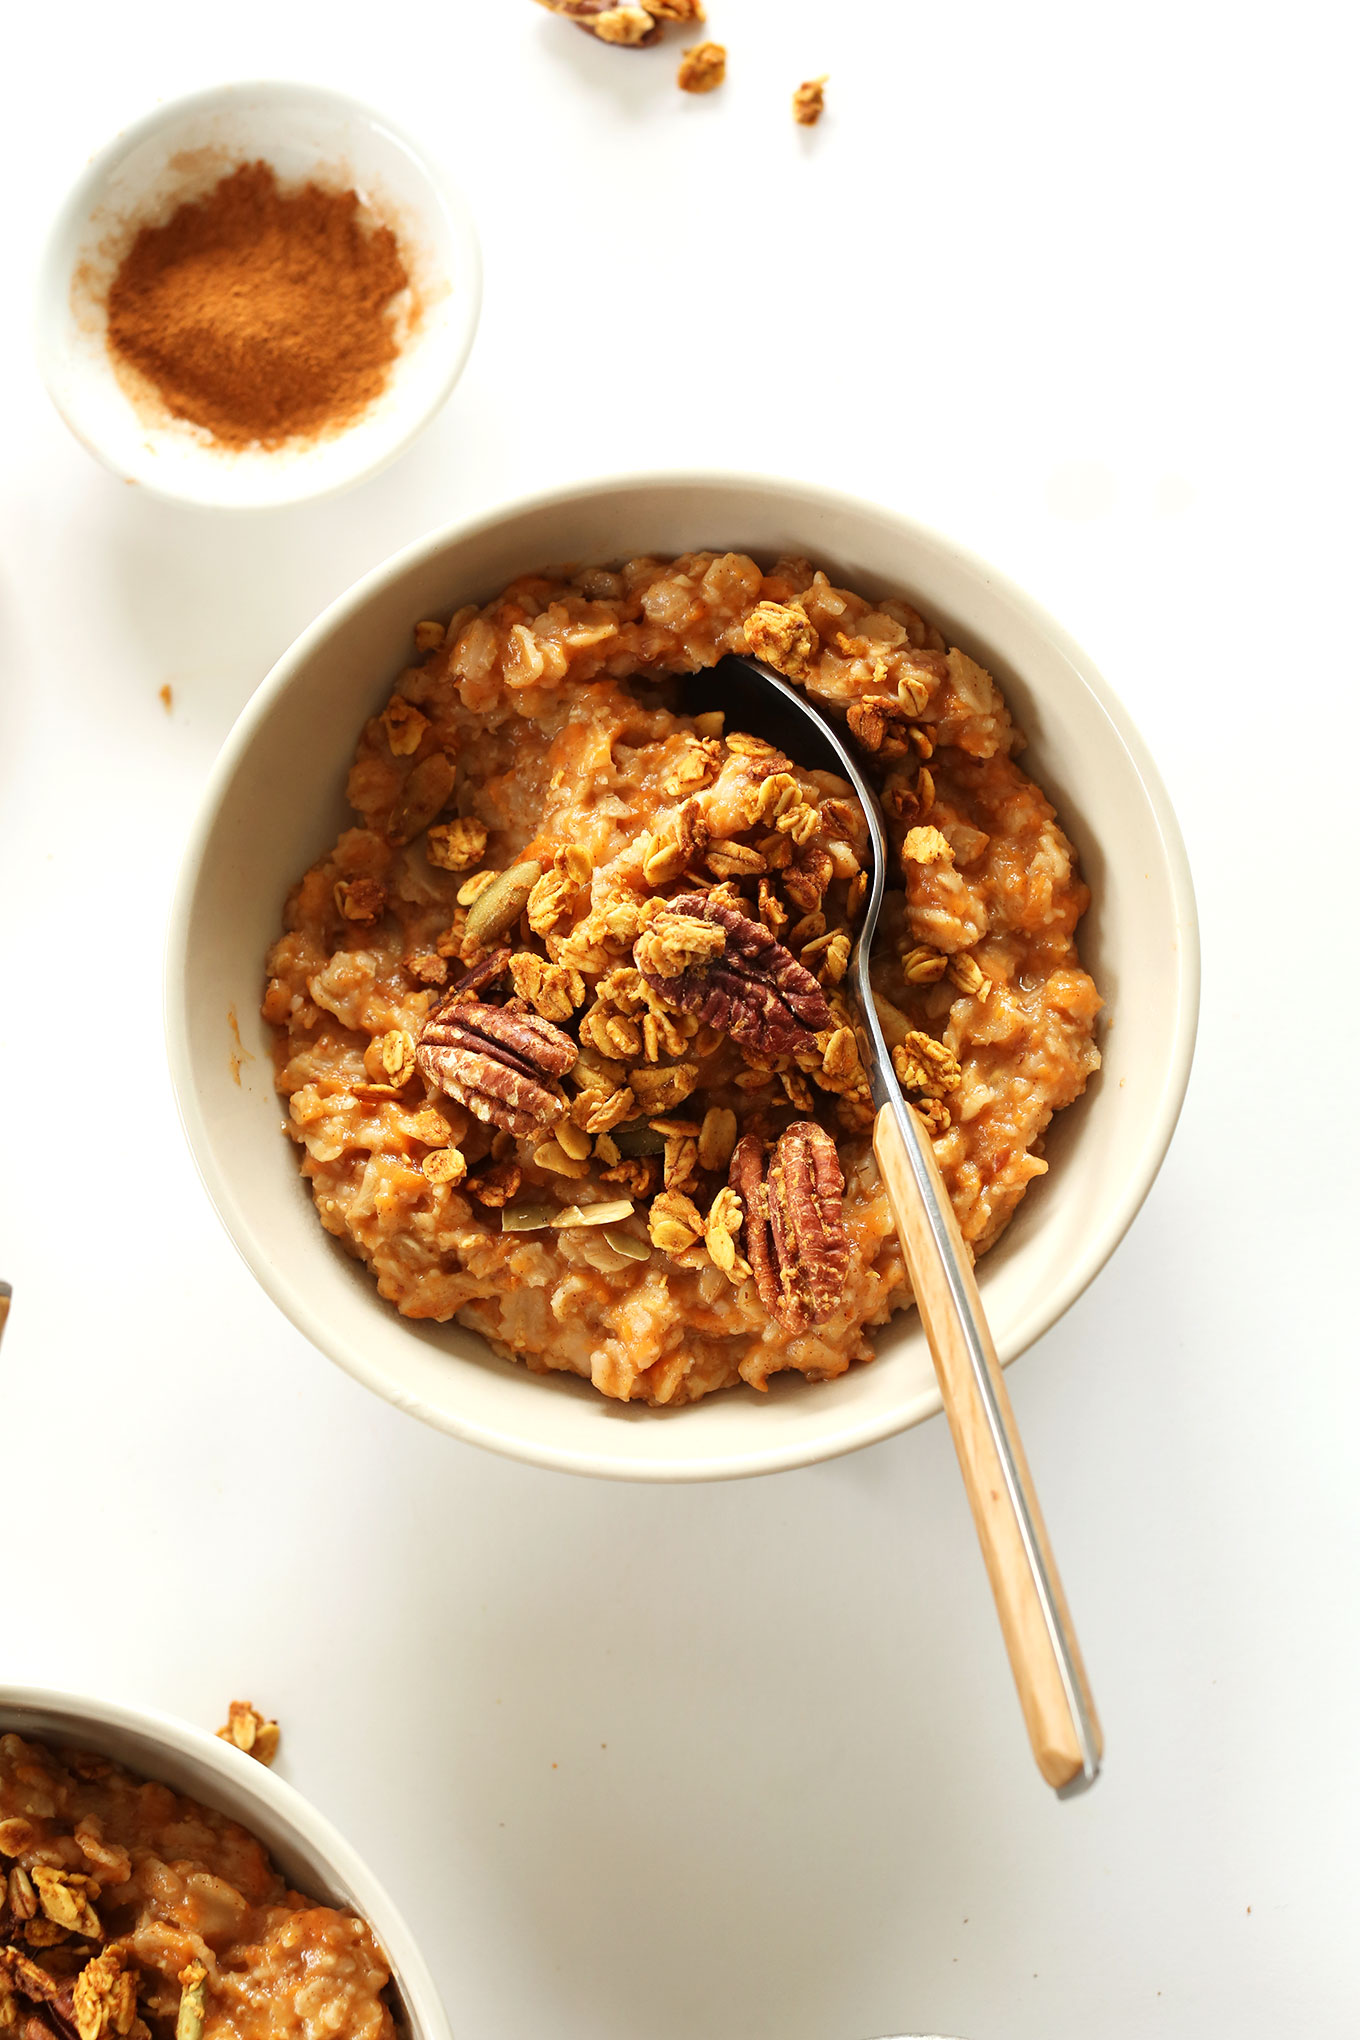 Bowl of our delicious Sweet Potato Pie Oats topped with pecans